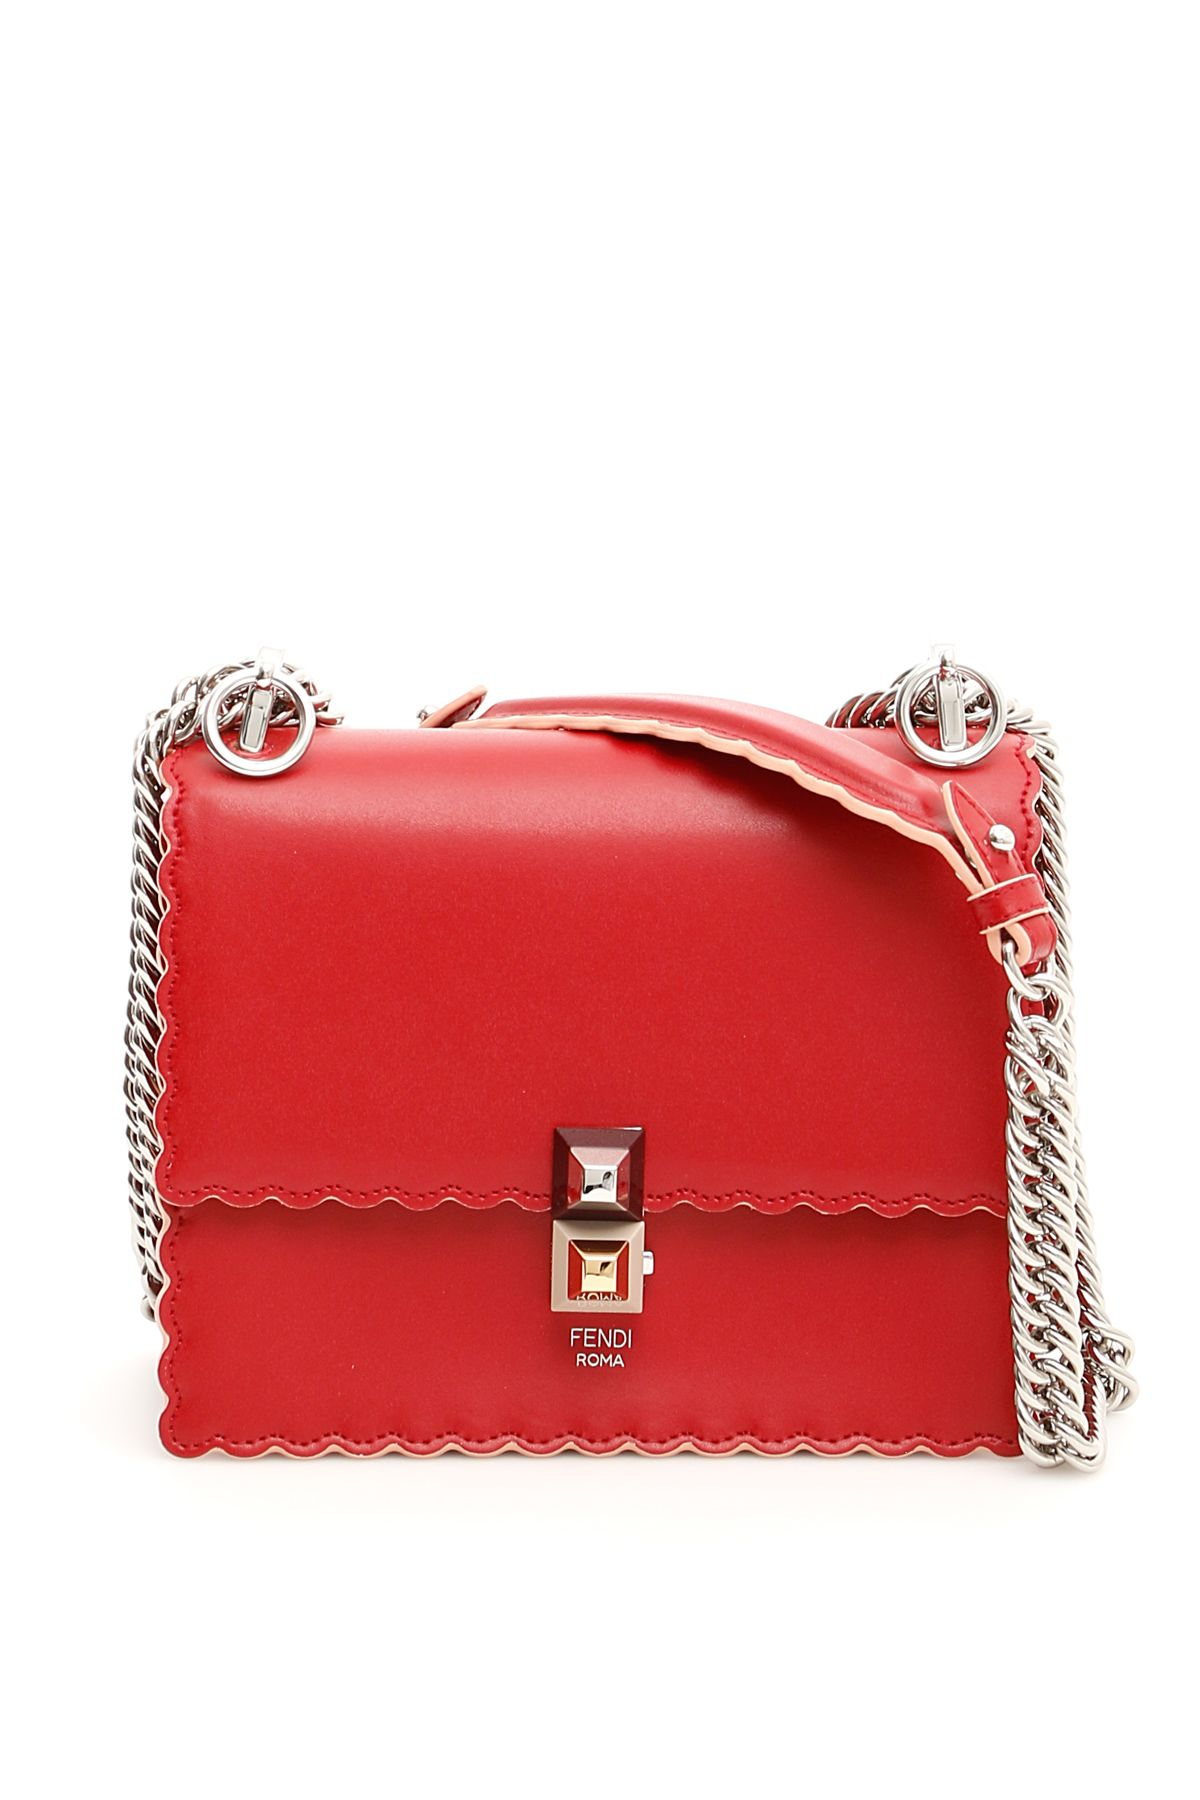 822784259ec7 FENDI KAN I SMALL BAG